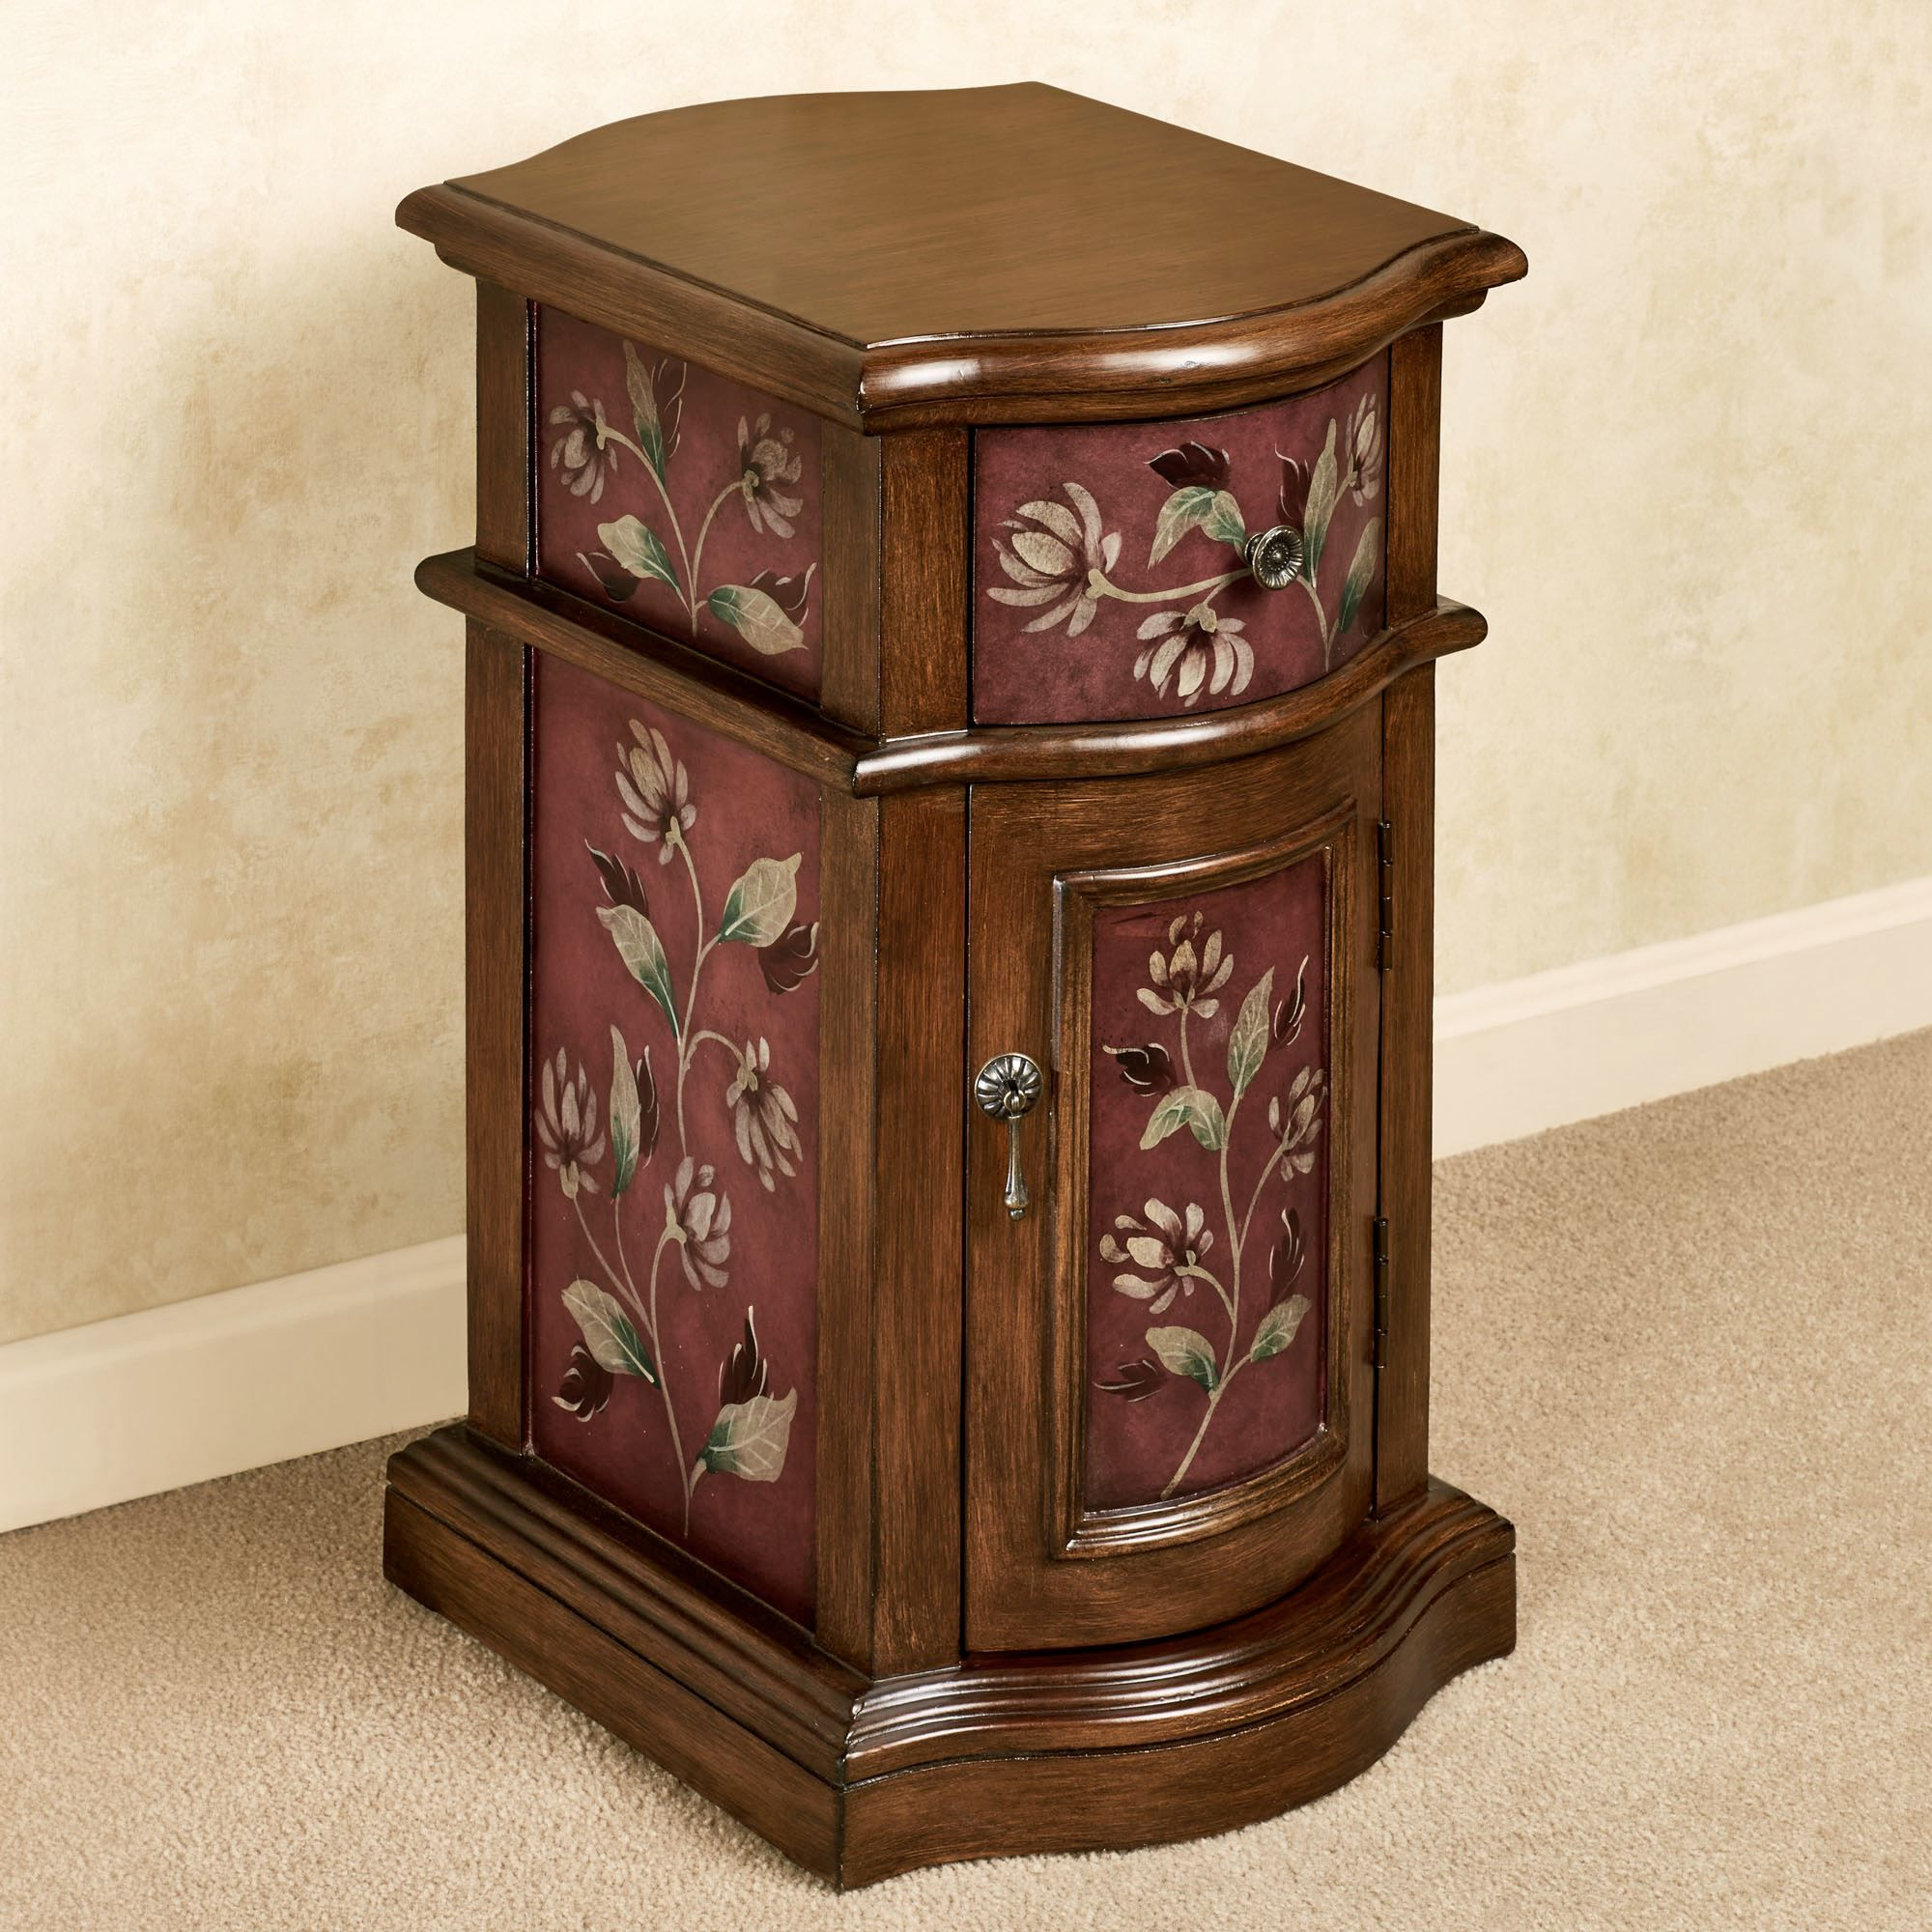 Best Sophie Floral Wooden Chairside Cabinet Furniture Accent 640 x 480